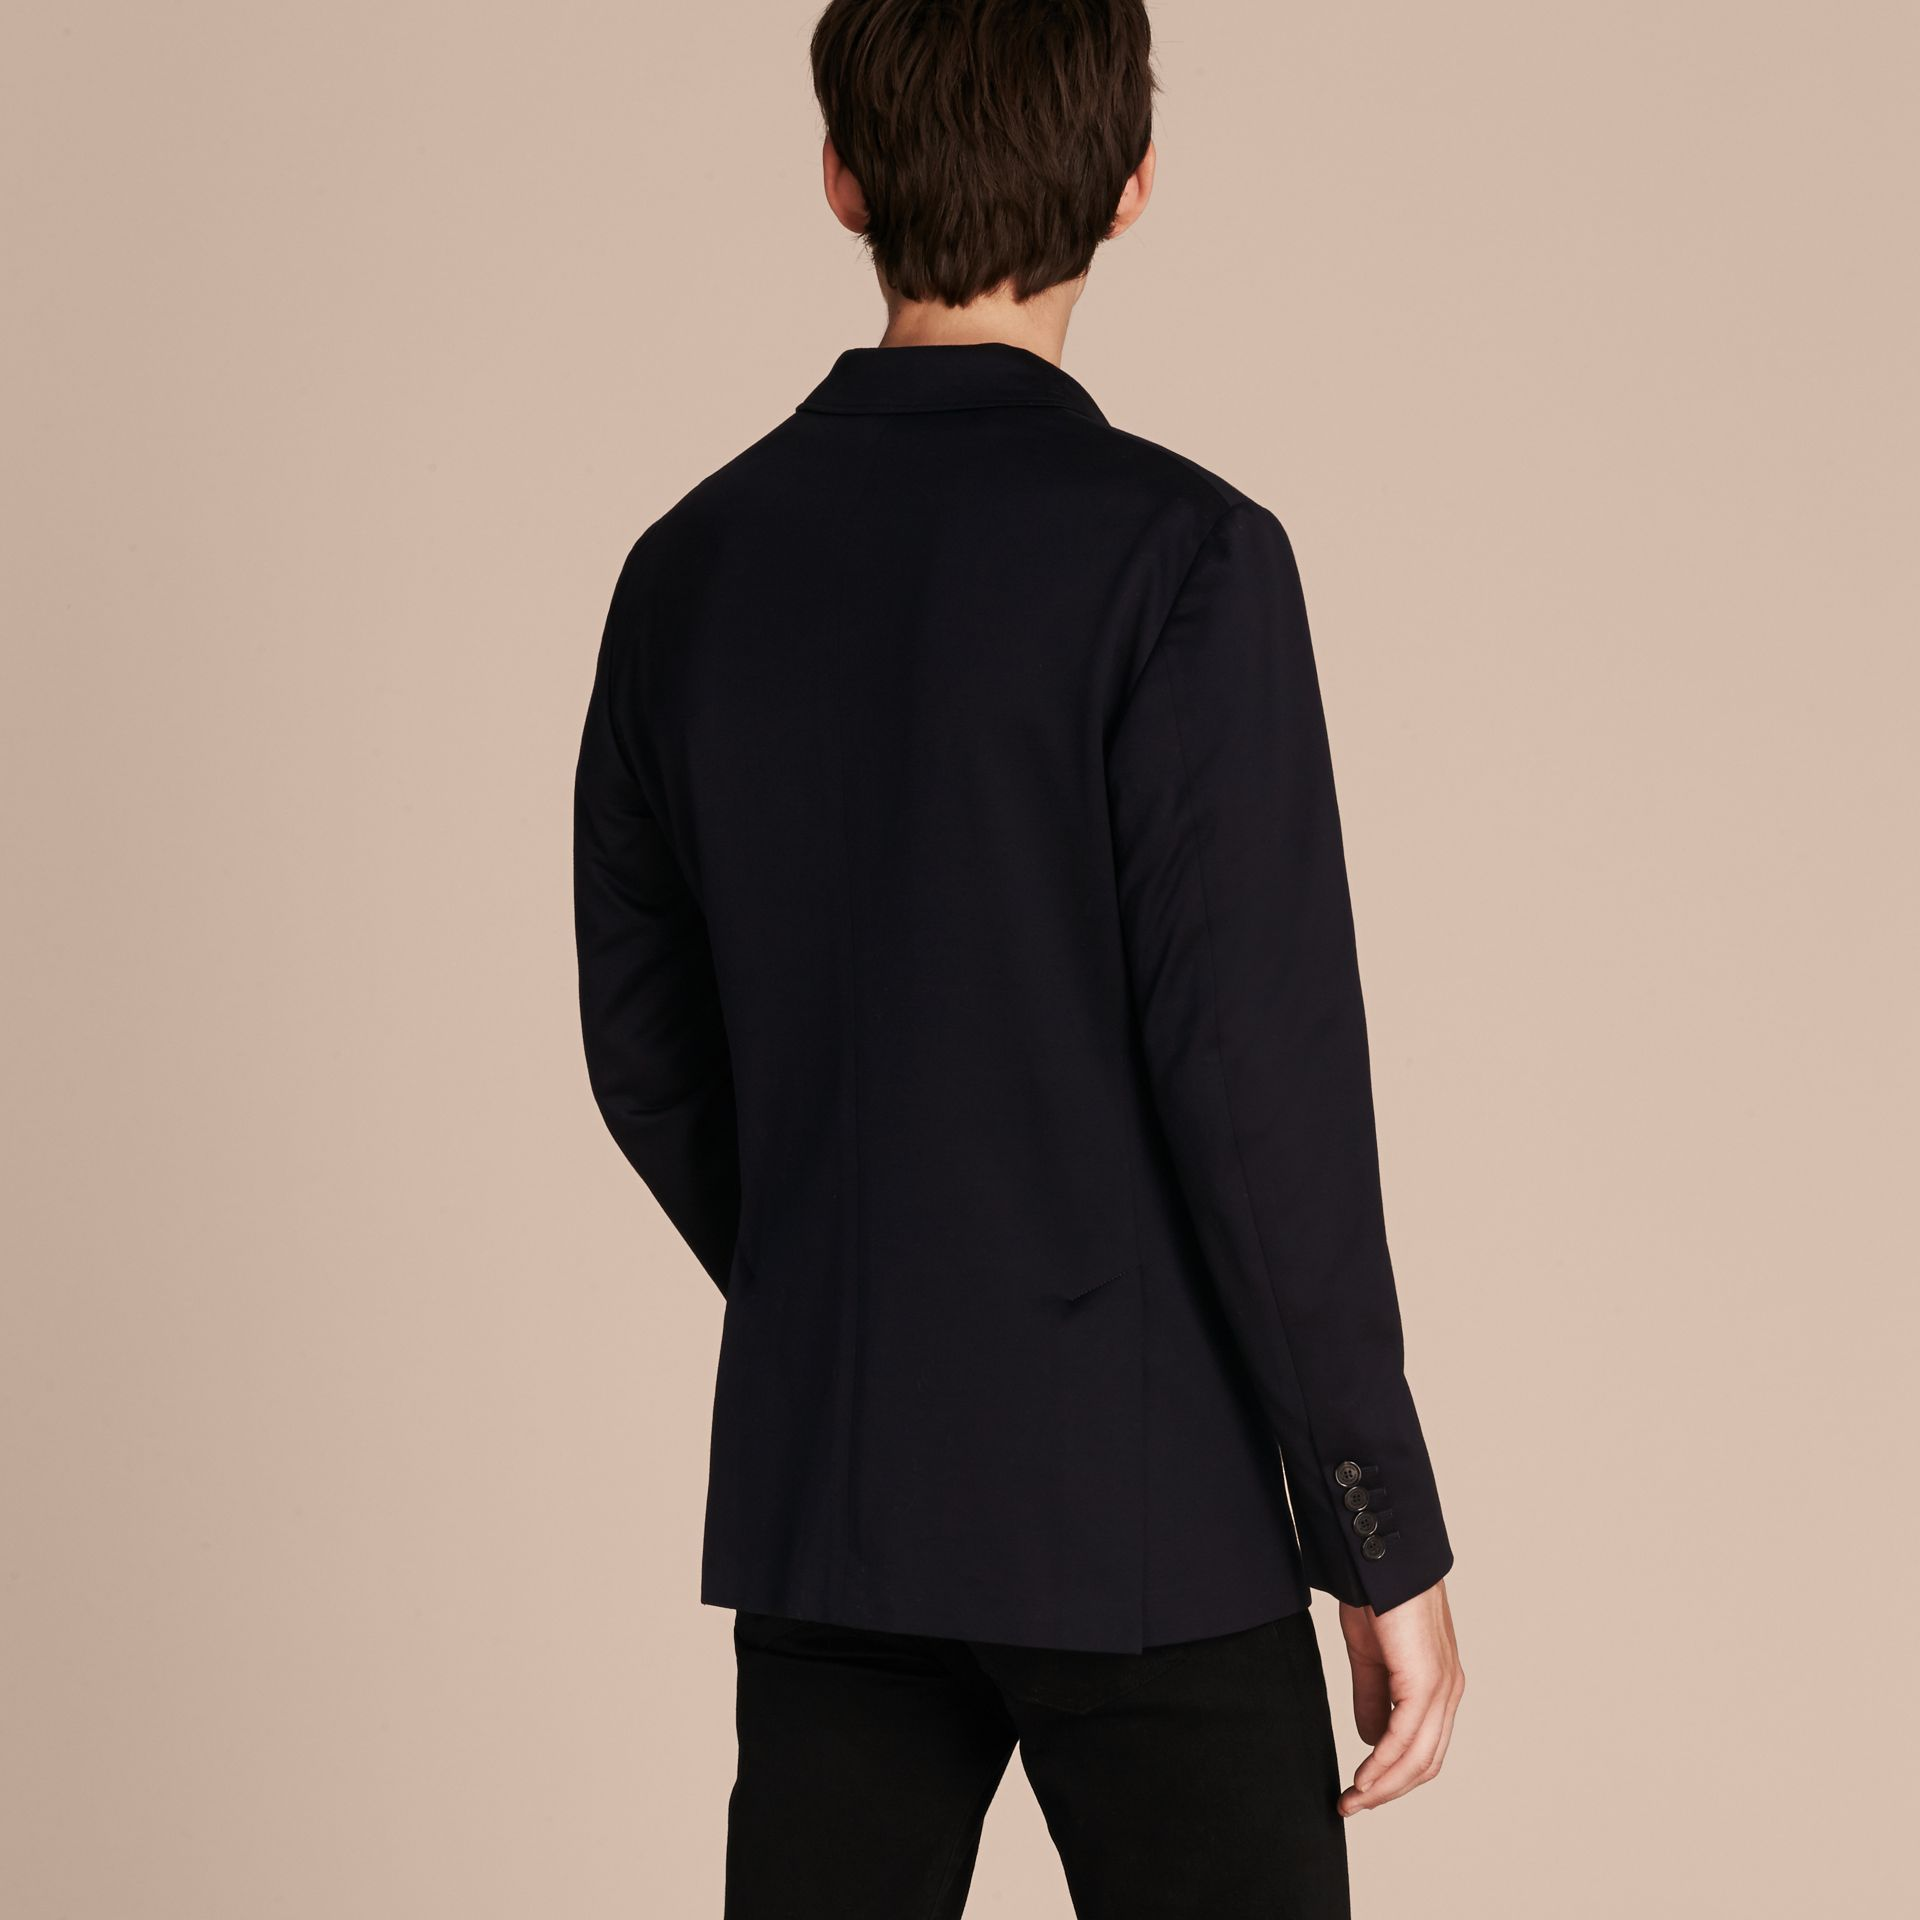 Navy Slim Fit Tailored Cotton Jacket Navy - gallery image 3